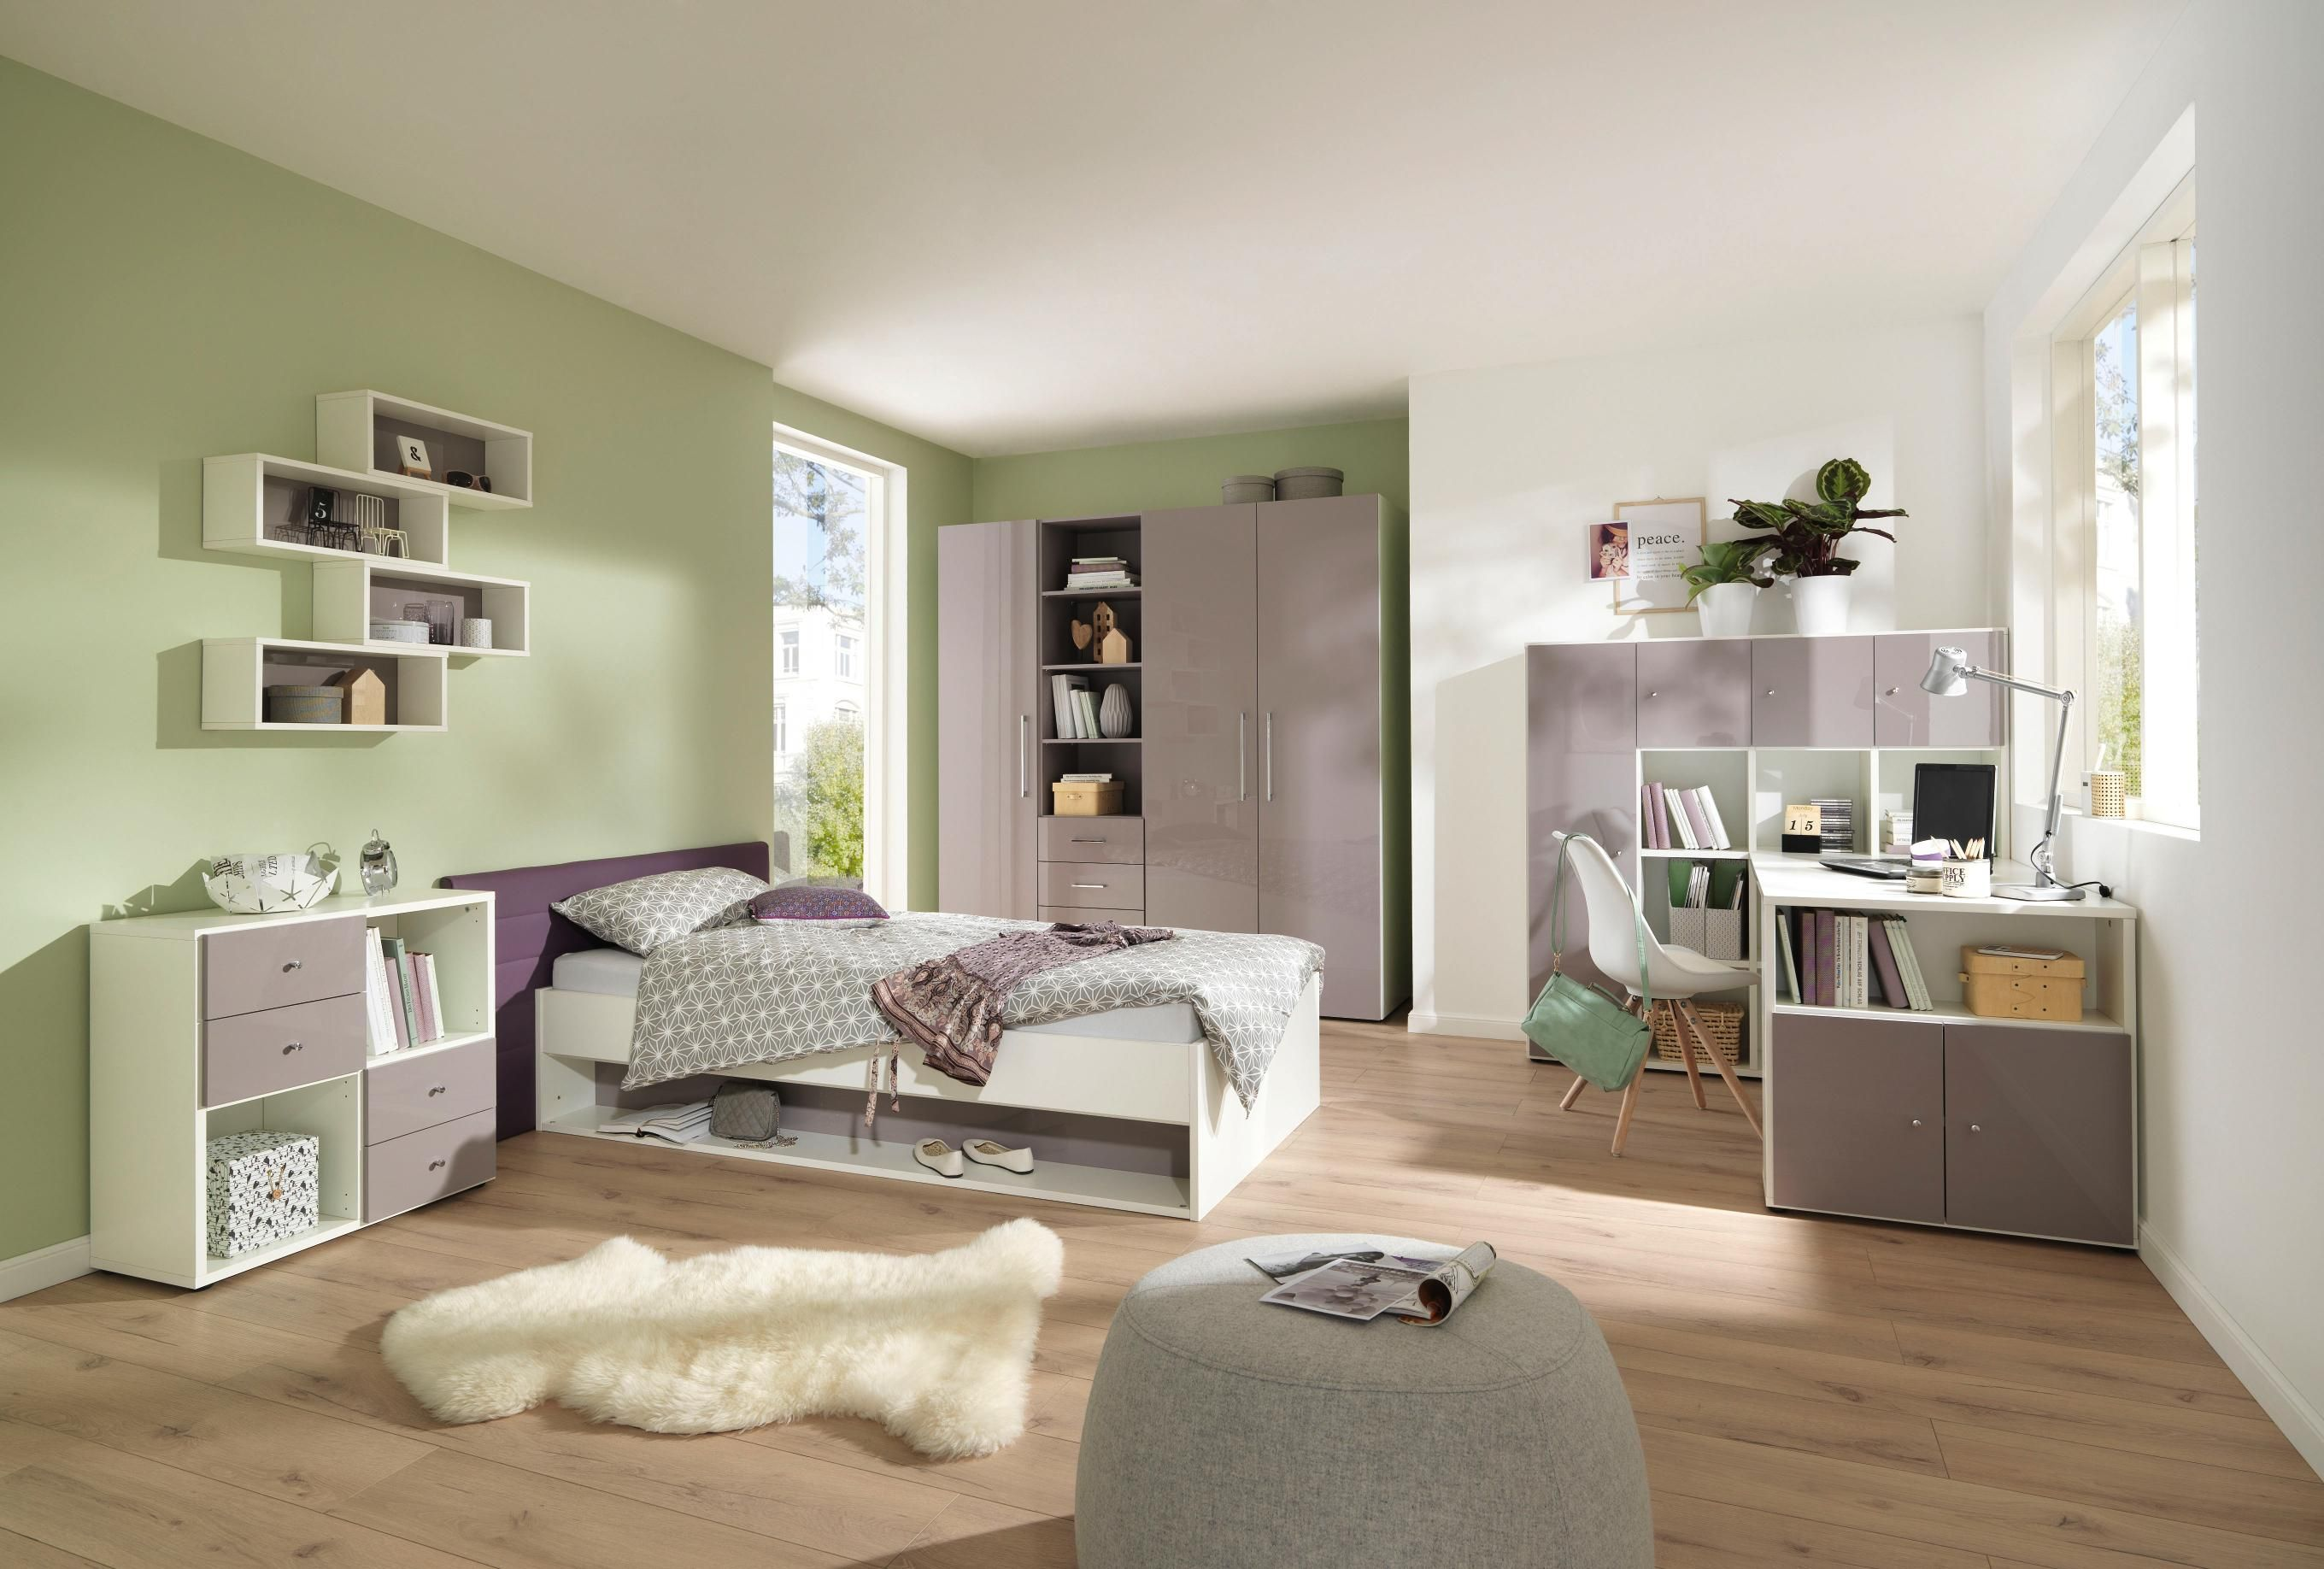 Jugendzimmer welnova kinder und jugendzimmer pinterest for Jugendzimmer fur 2 kinder